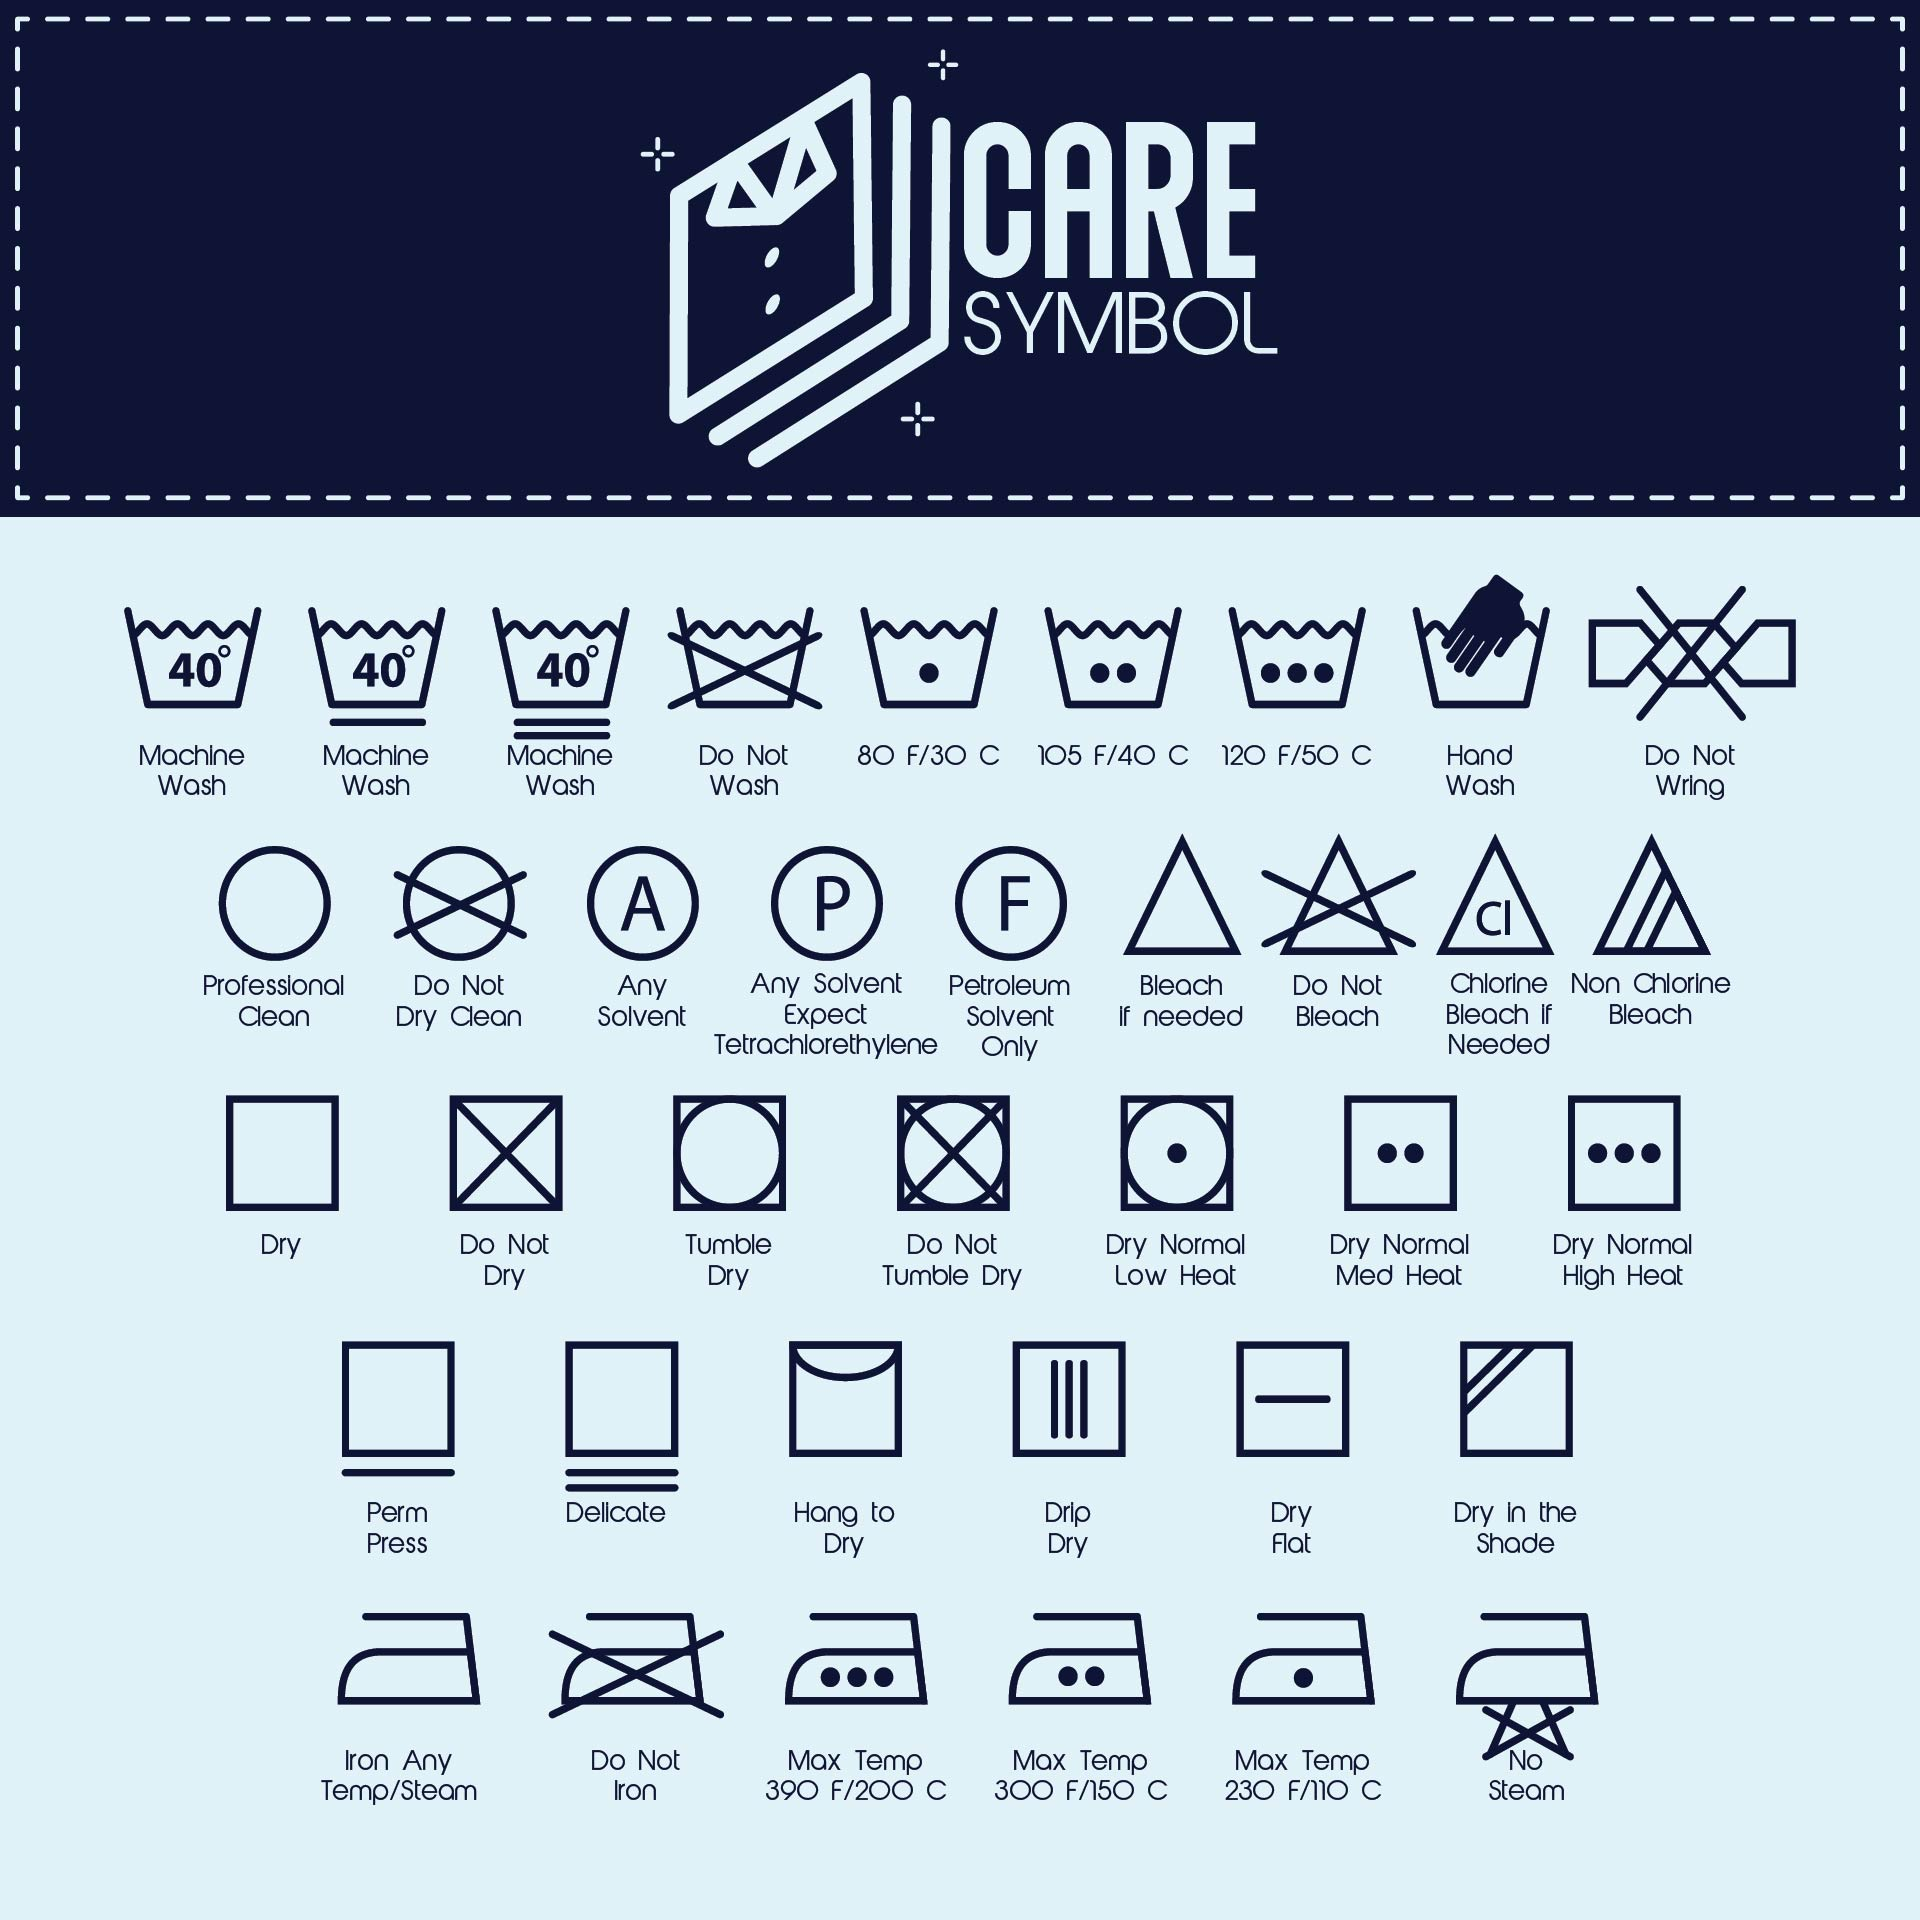 Printable Laundry Care Symbol Chart